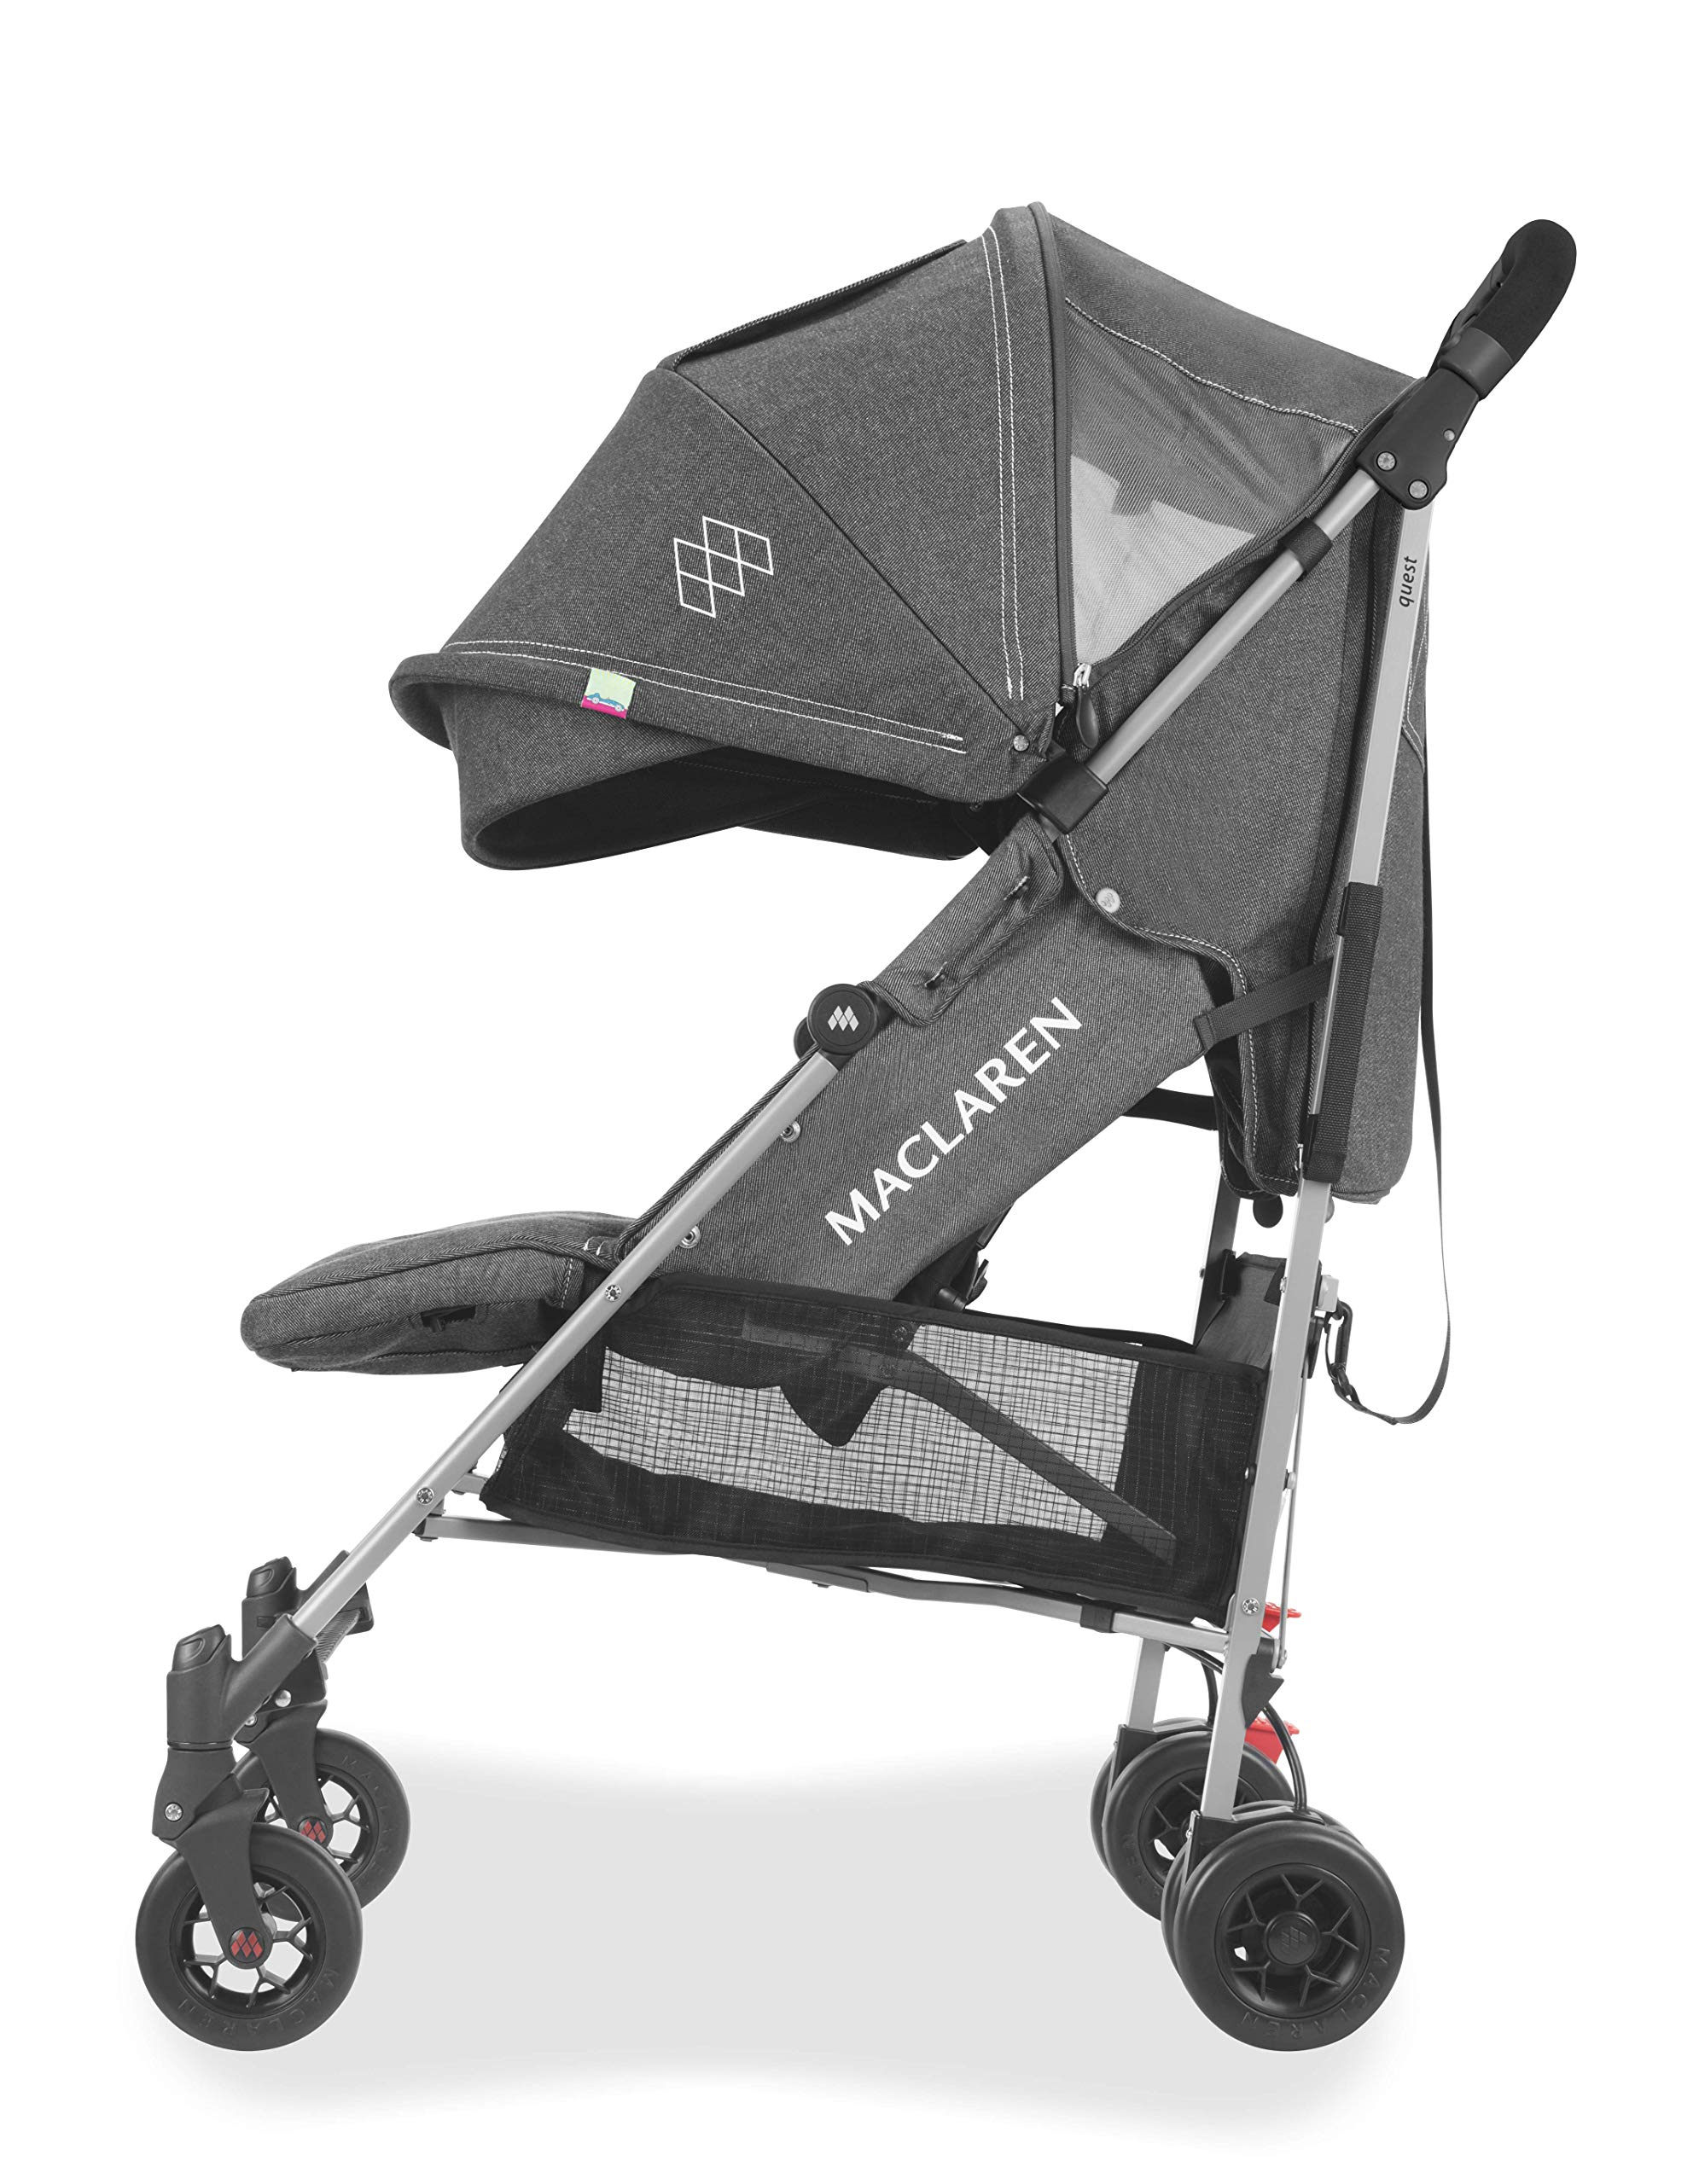 Maclaren Quest Arc Stroller- Ideal for Newborns up to 25kg with extendable UPF 50+/Waterproof Hood, Multi-Position seat and 4-Wheel Suspension. Maclaren Carrycot Compatible. Accessories in The Box Maclaren Lightweight and compact. ideal for newborns and children up to 25kg. you can do it all with one-hand- open, close, push and adjust the seat, footrest and front safety lock Comfy and perfect for travel. the quest arc's padded seat reclines into 4 positions and converts into a new-born safety system. coupled with ultra light flat-free eva tires and all wheel suspension Smart product for active parents. compatible with the maclaren carrycot. all maclaren strollers have waterproof/ upf 50+ hoods to protect from the elements and machine washable seats to keep tidy 12